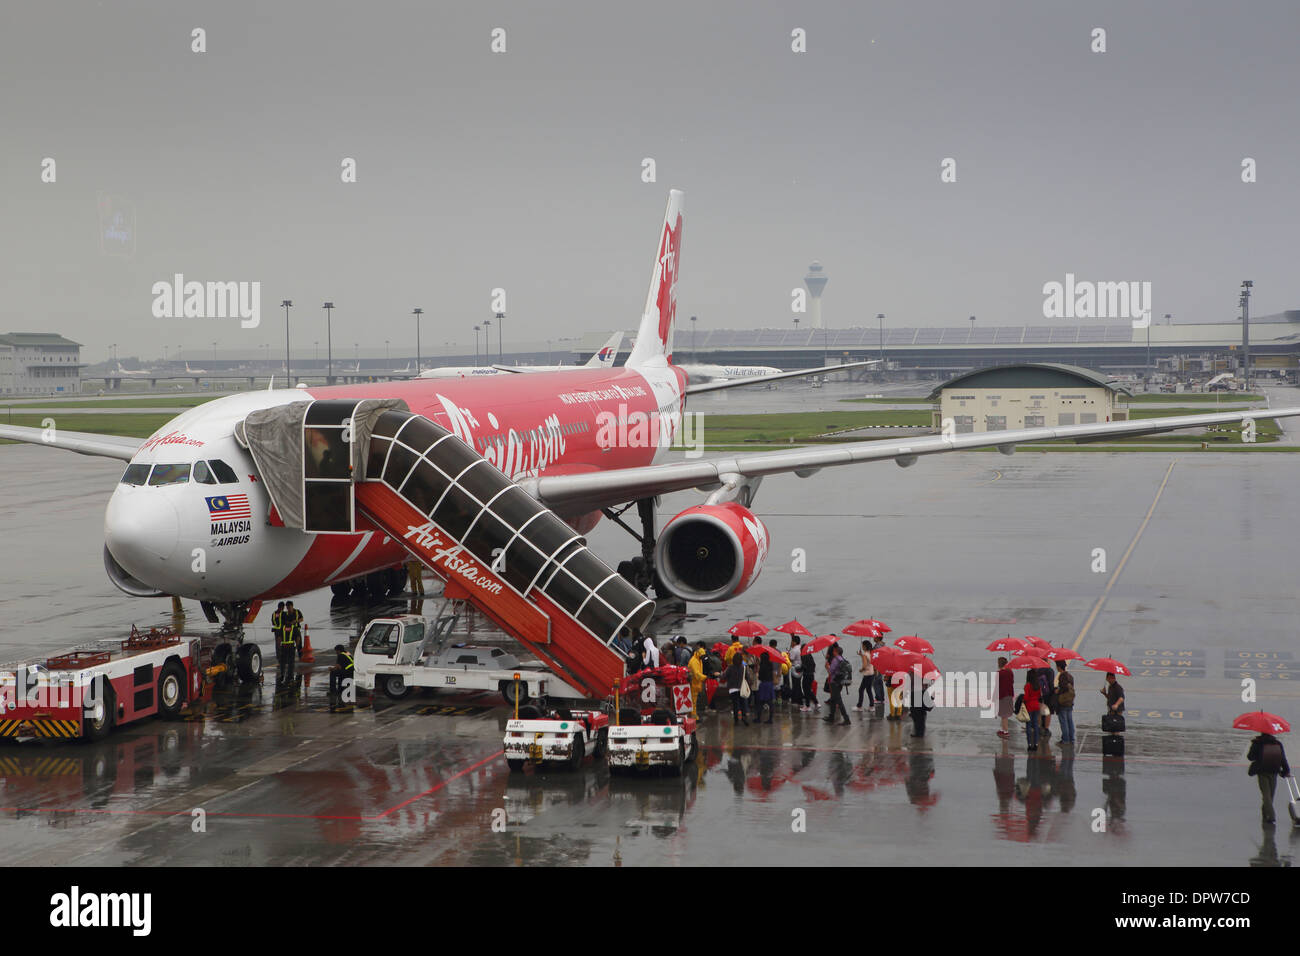 Passengers boarding Air Asia airlines flight using staircase in the rain, with red umbrellas provided by the airline - Stock Image